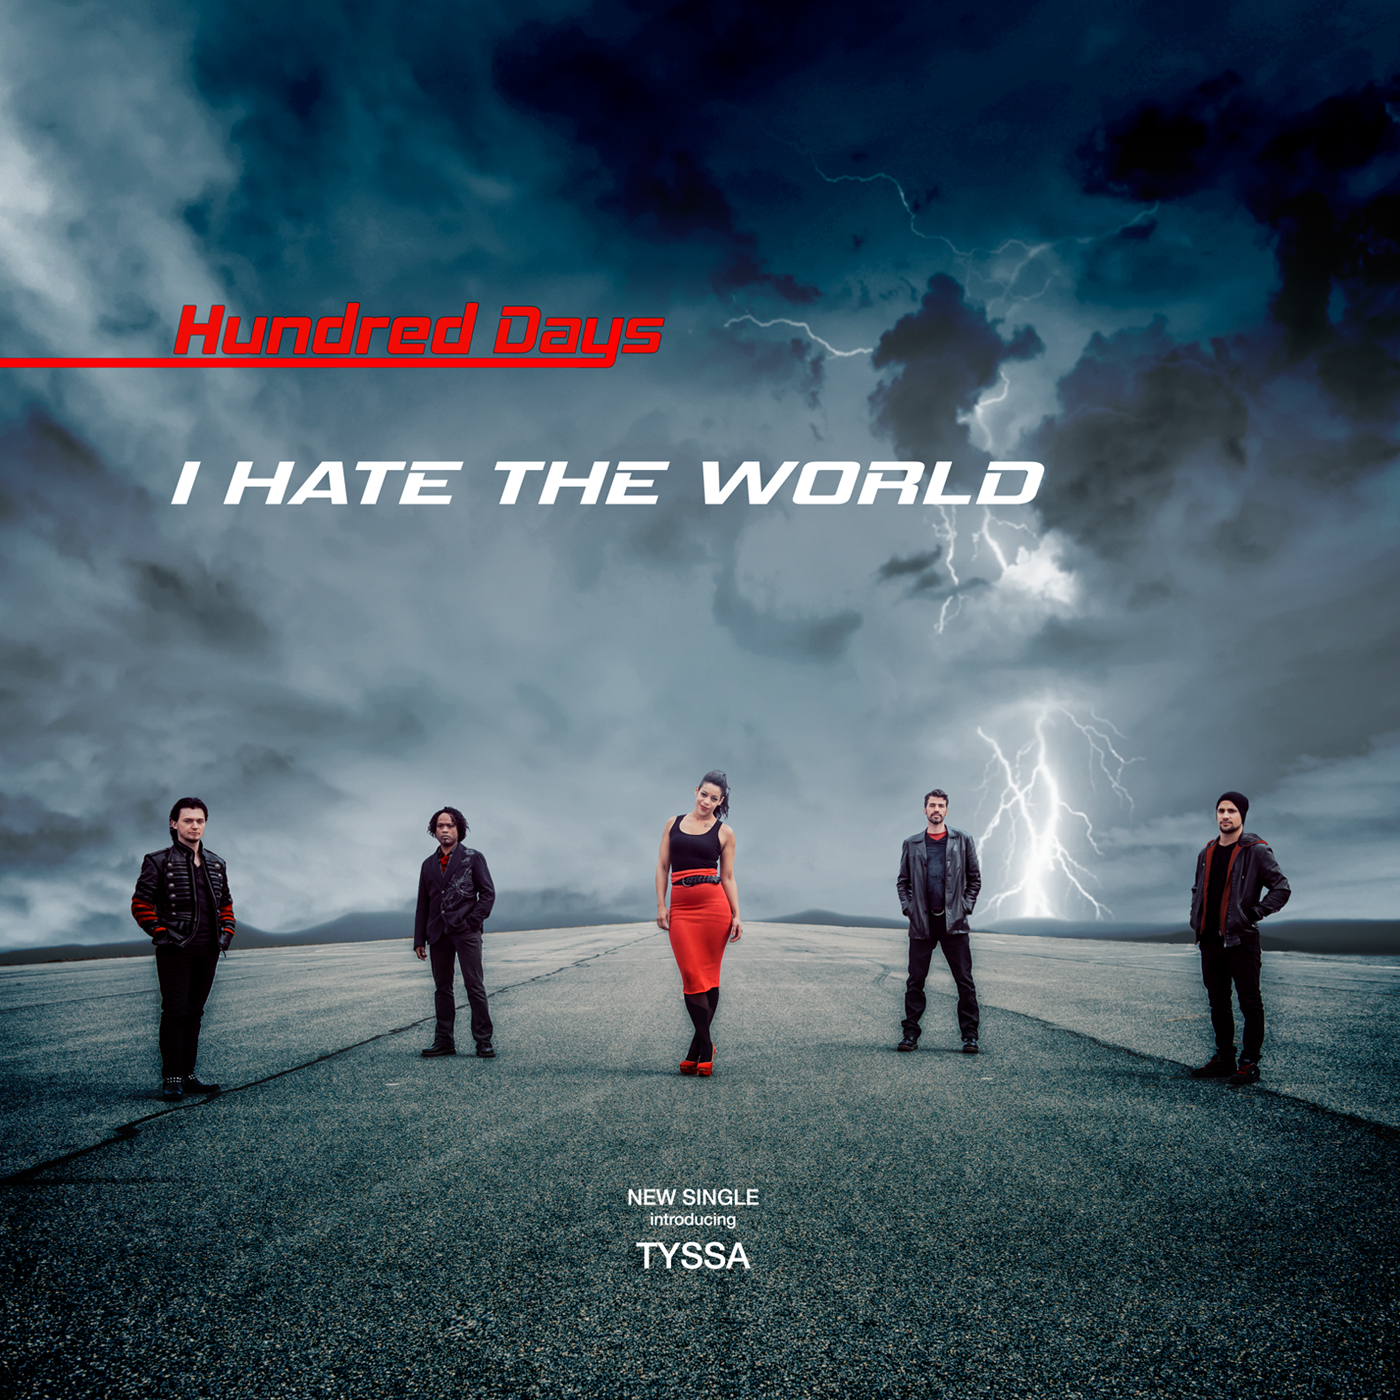 HD I HATE COVER LOW